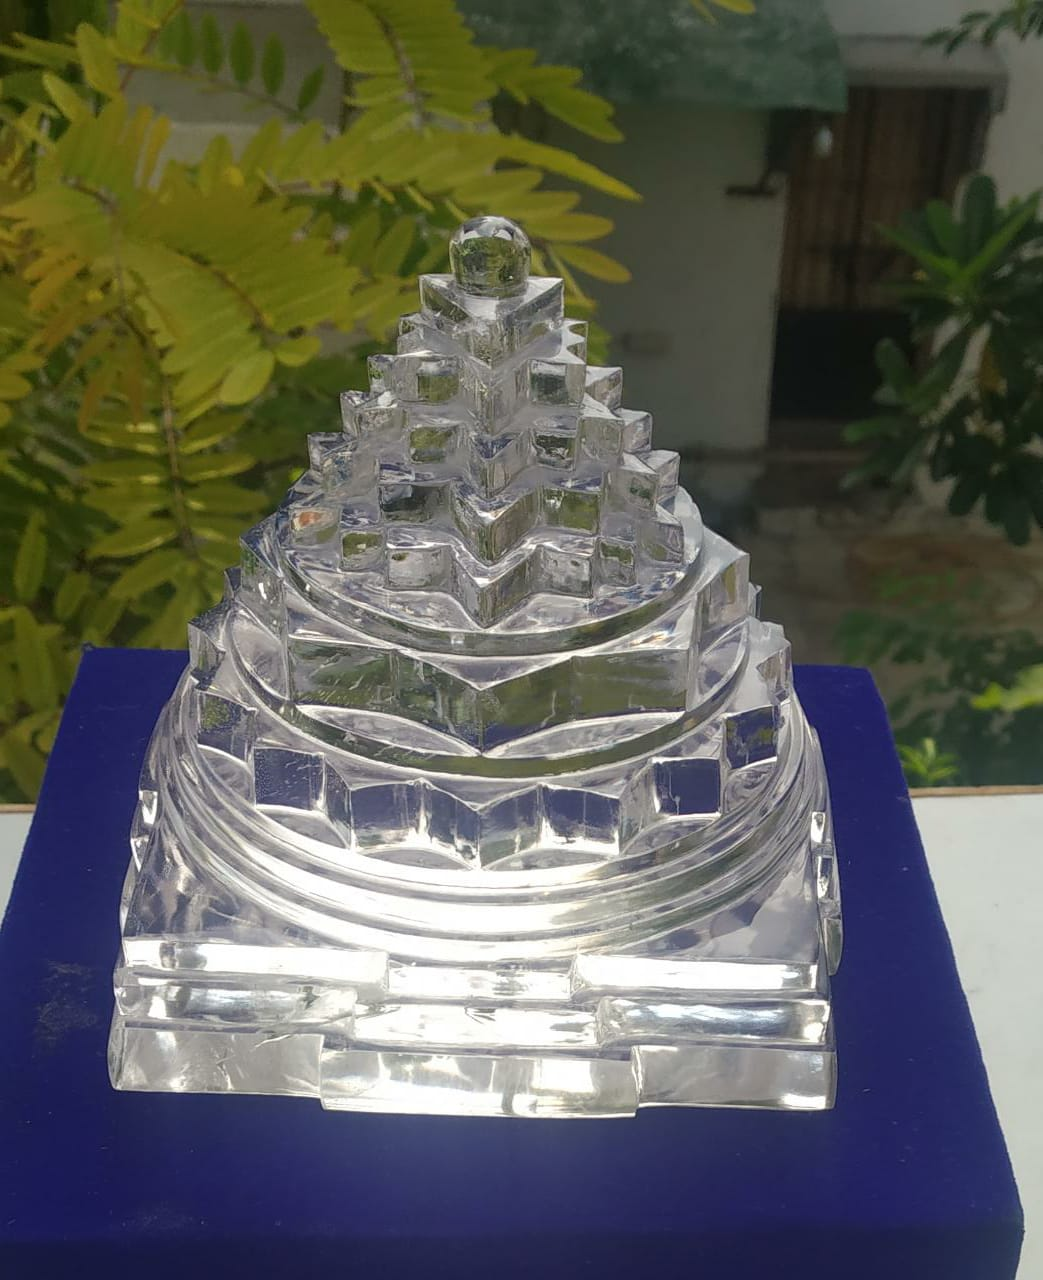 Natural Crystal Shree Yantra - 1704 Gram .